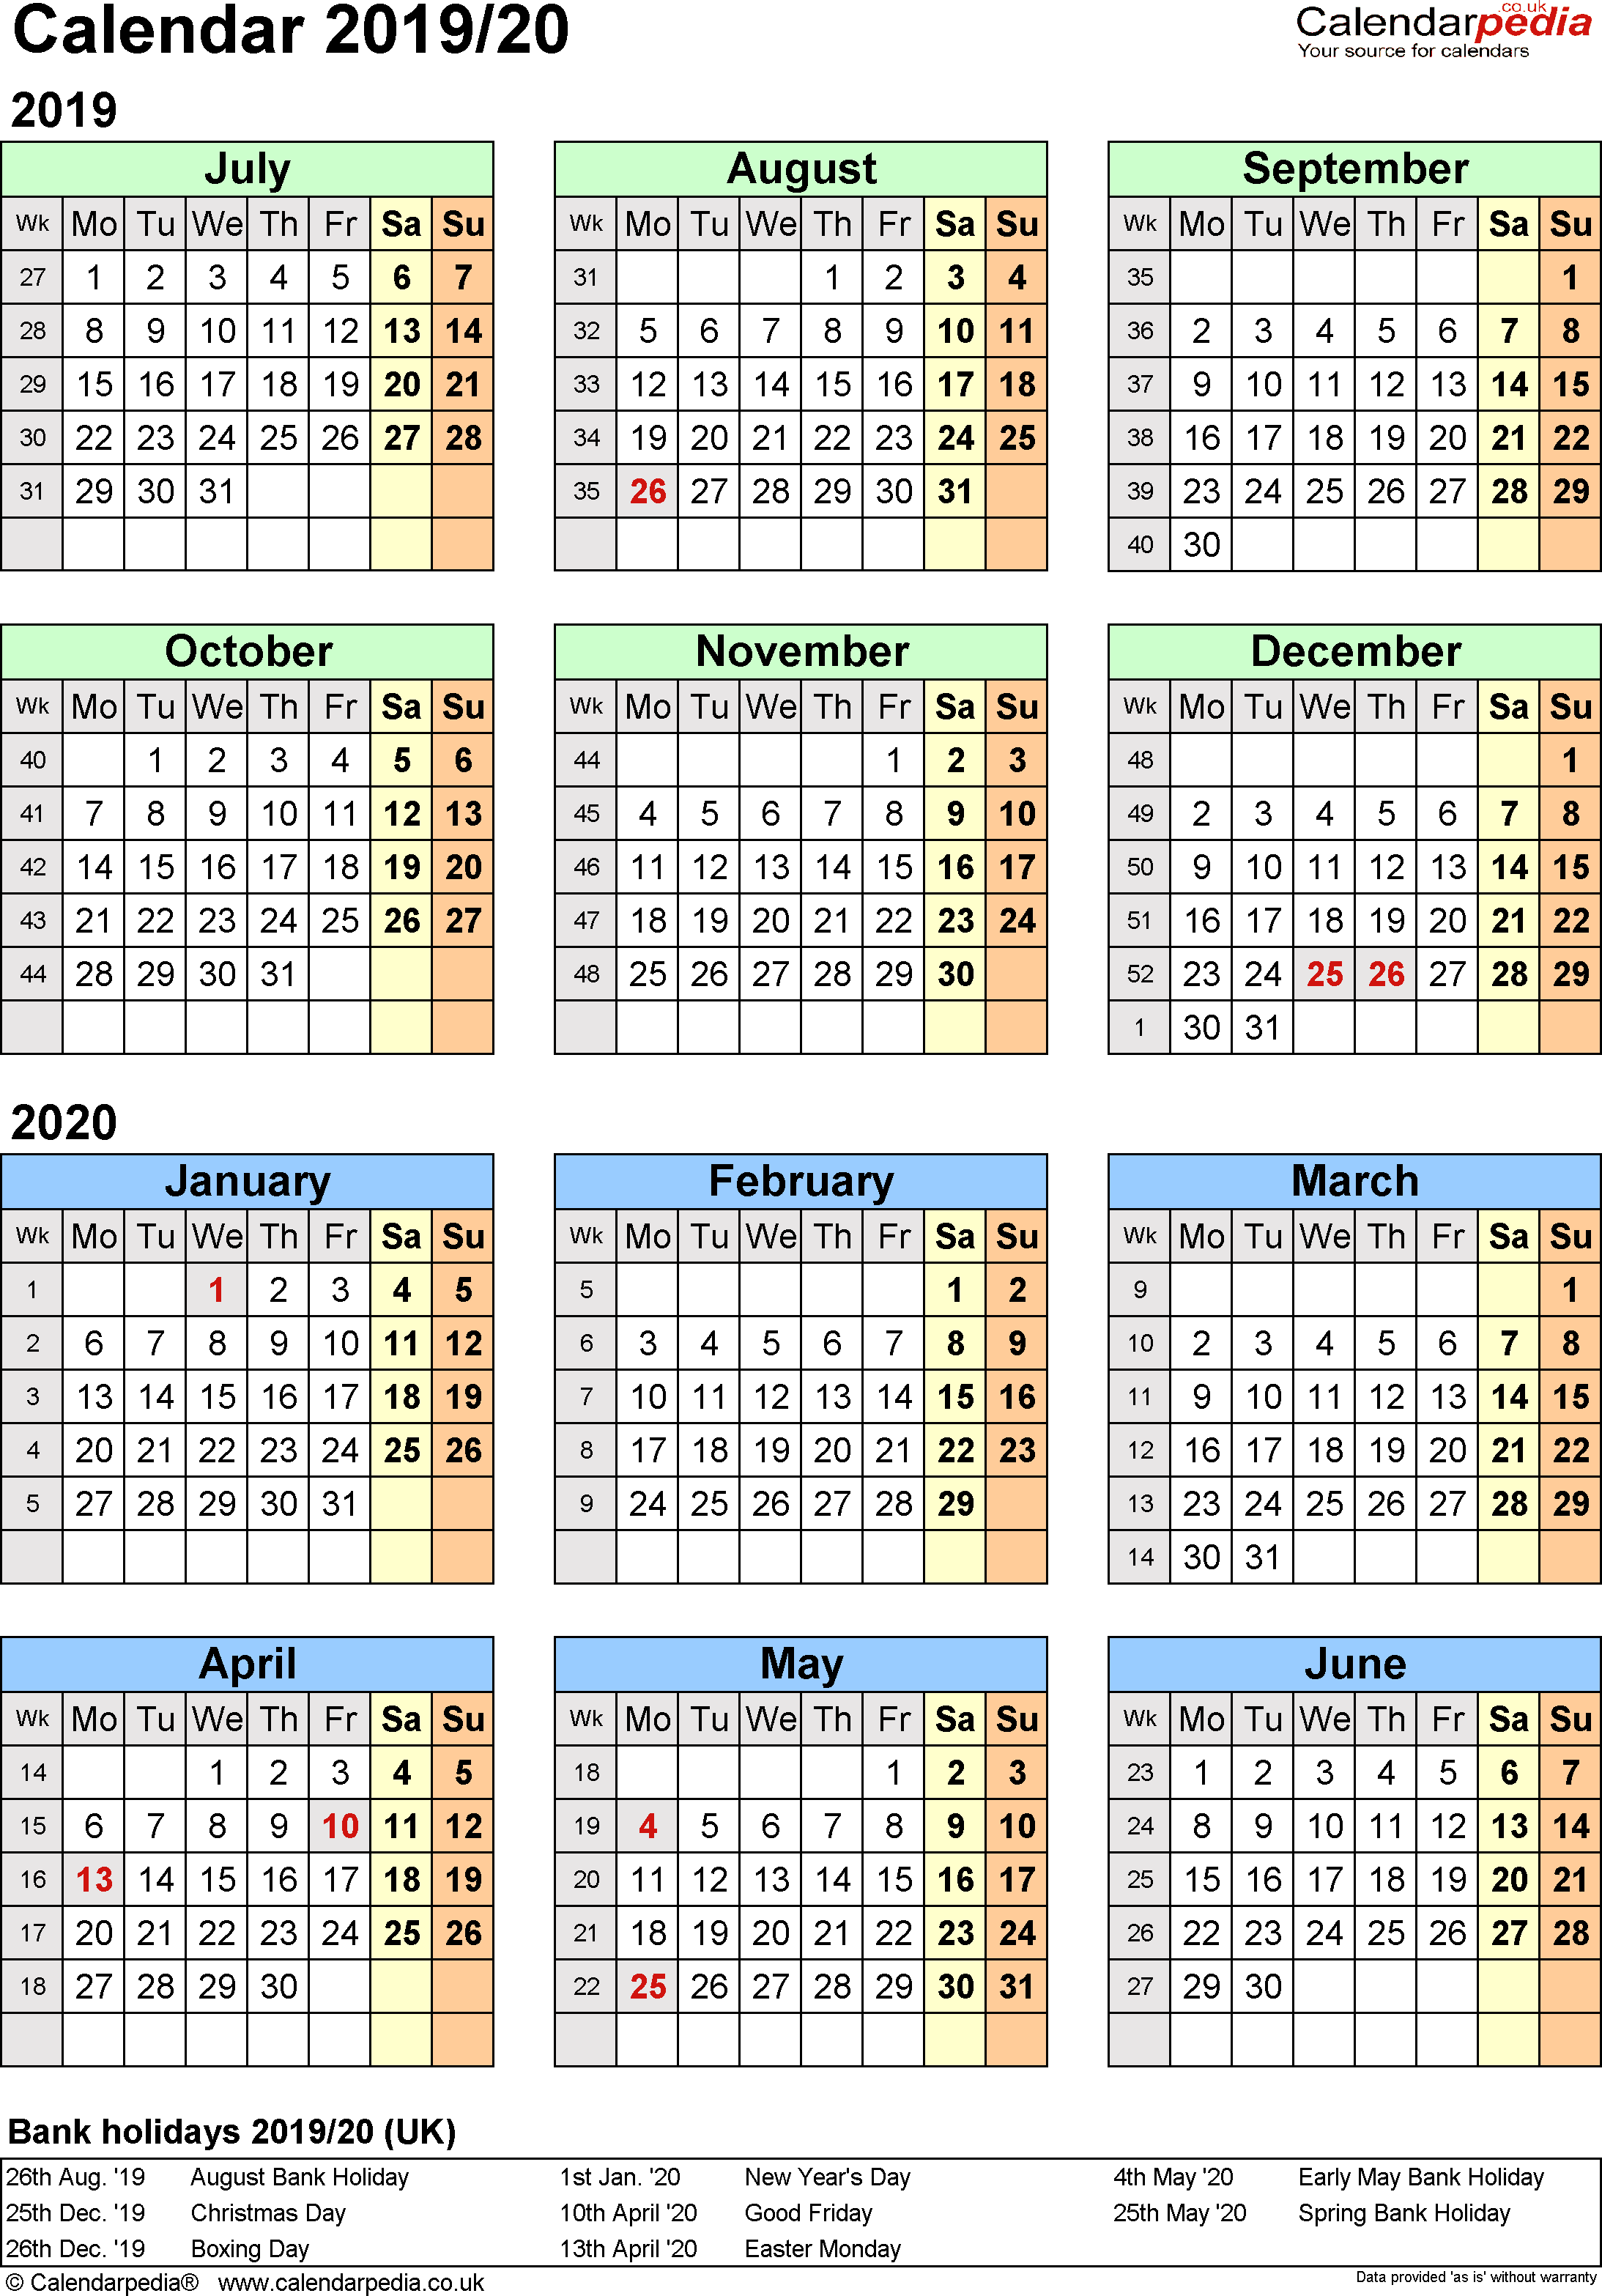 template 2 pdf template for split year calendar 20192020 portrait orientation